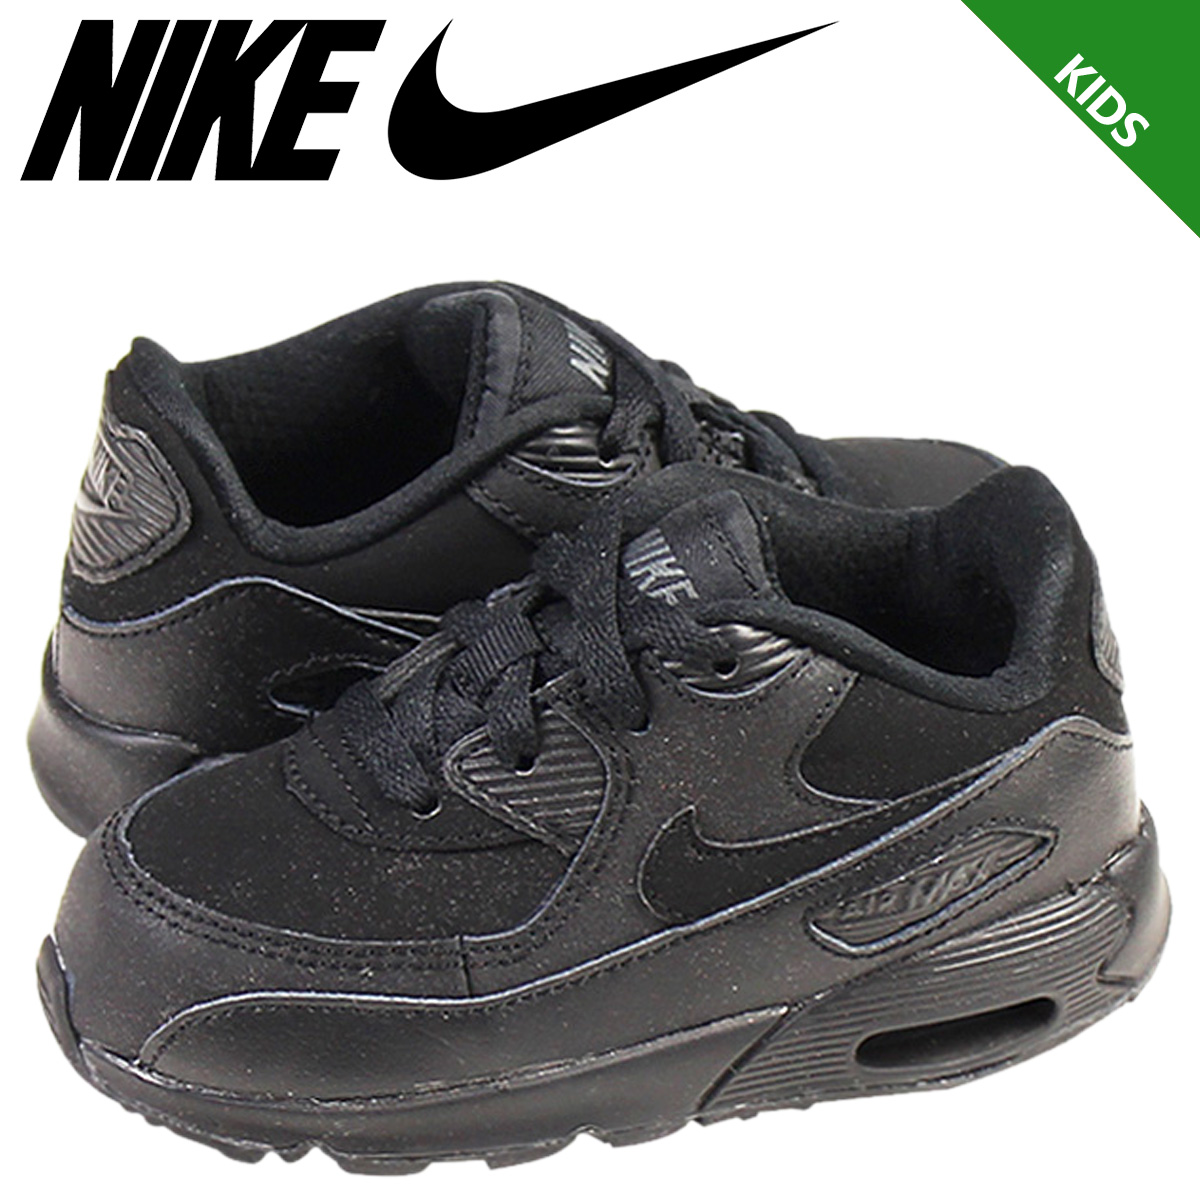 acfb0168289eb8 ALLSPORTS  Nike NIKE baby kids AIR MAX 90 BT sneakers Air Max 90 baby  toddler junior kids BABY TODDLER 408110-091-leather  11   12 new stock    regular  ...